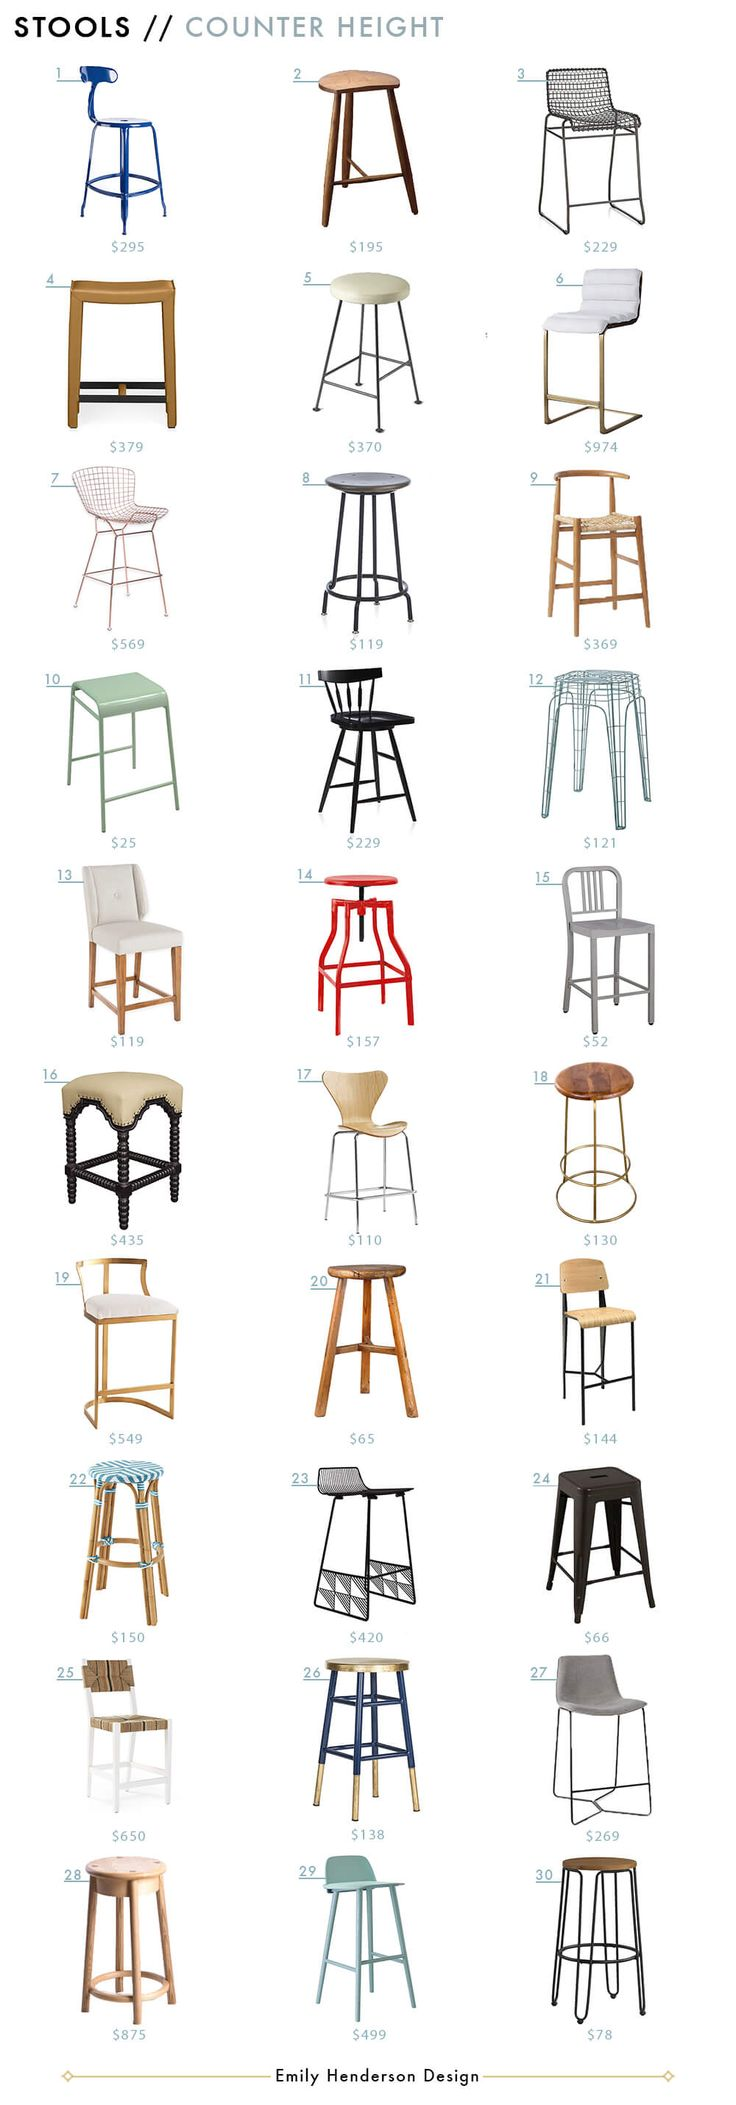 The Ultimate Counter and Bar Stool Roundup - Counter Height